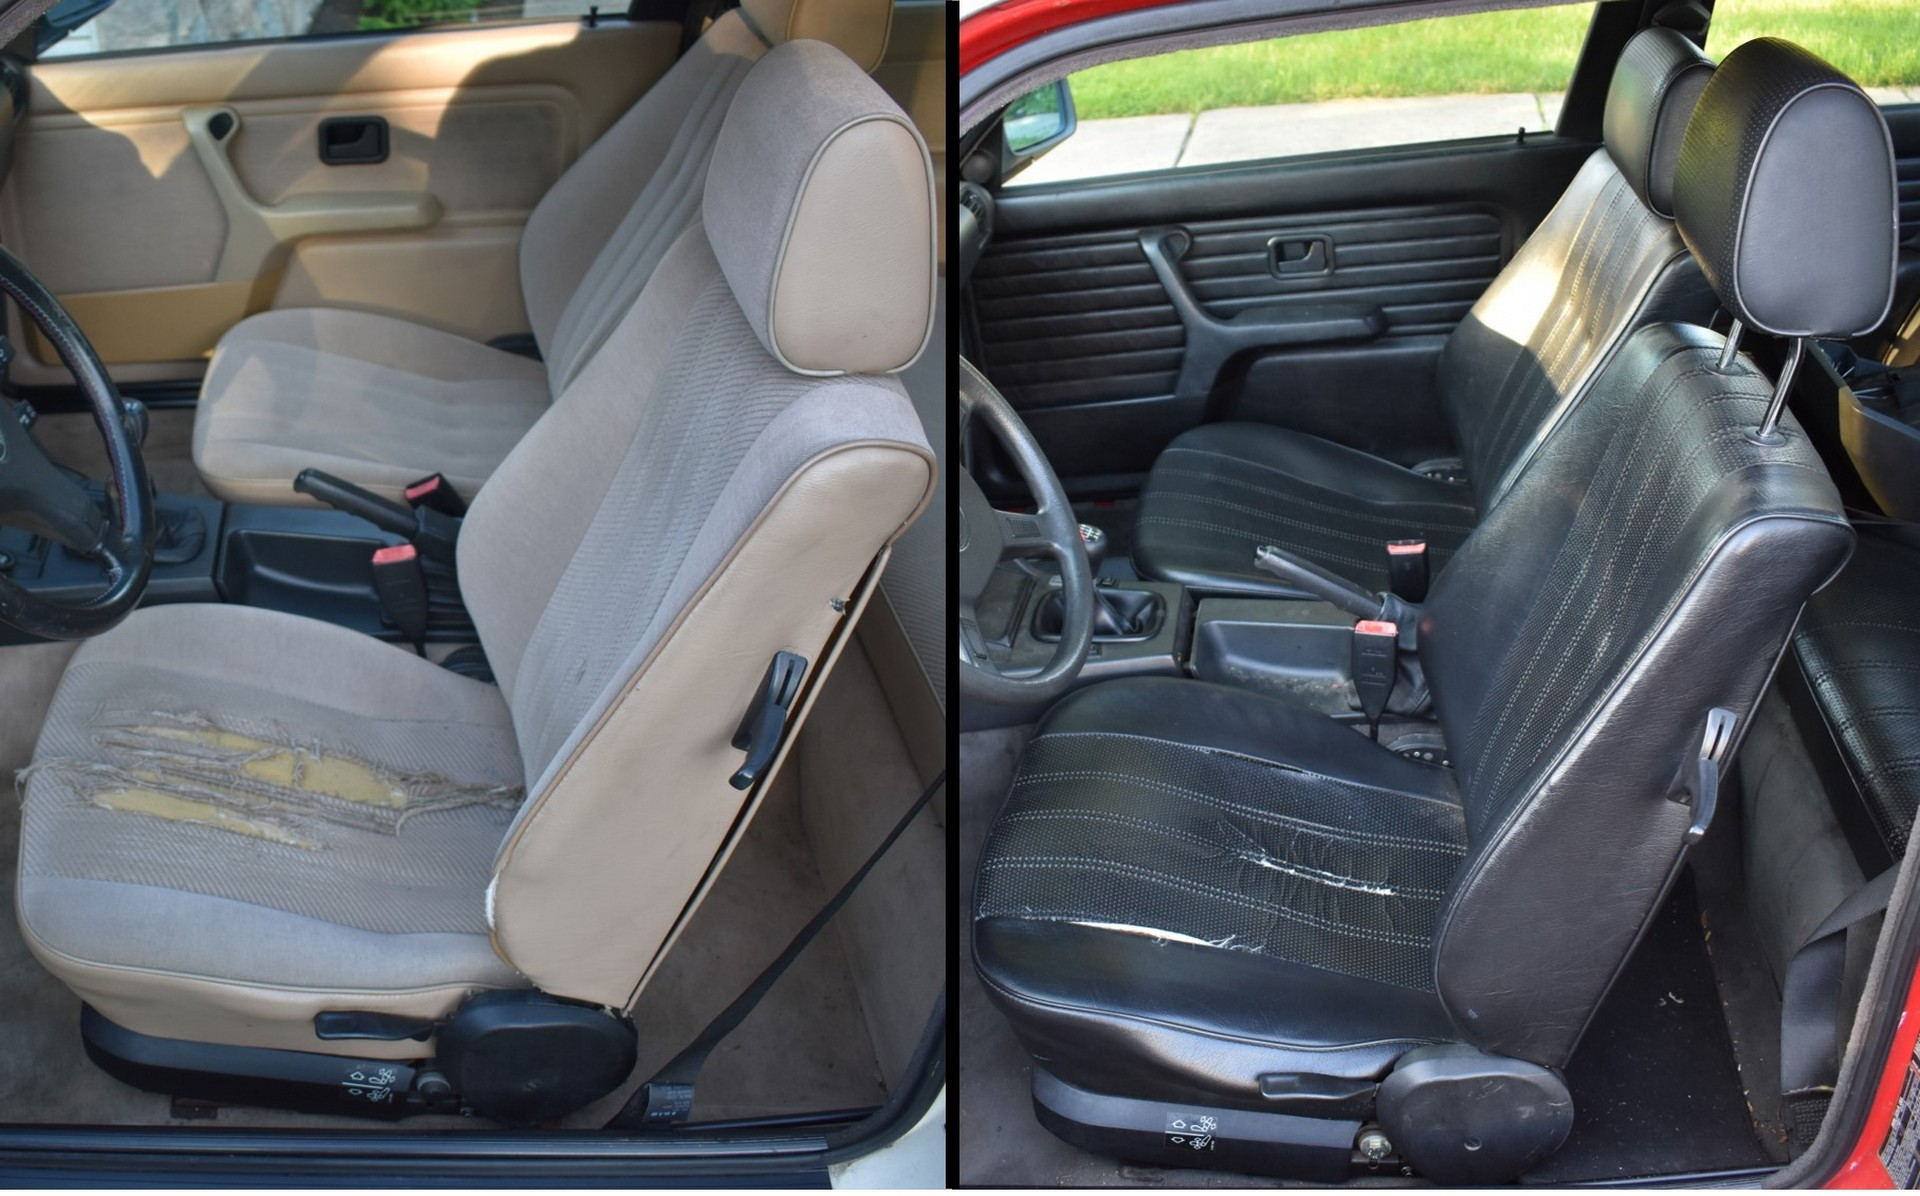 BMW E30 Buyers Guide Ripped Seats